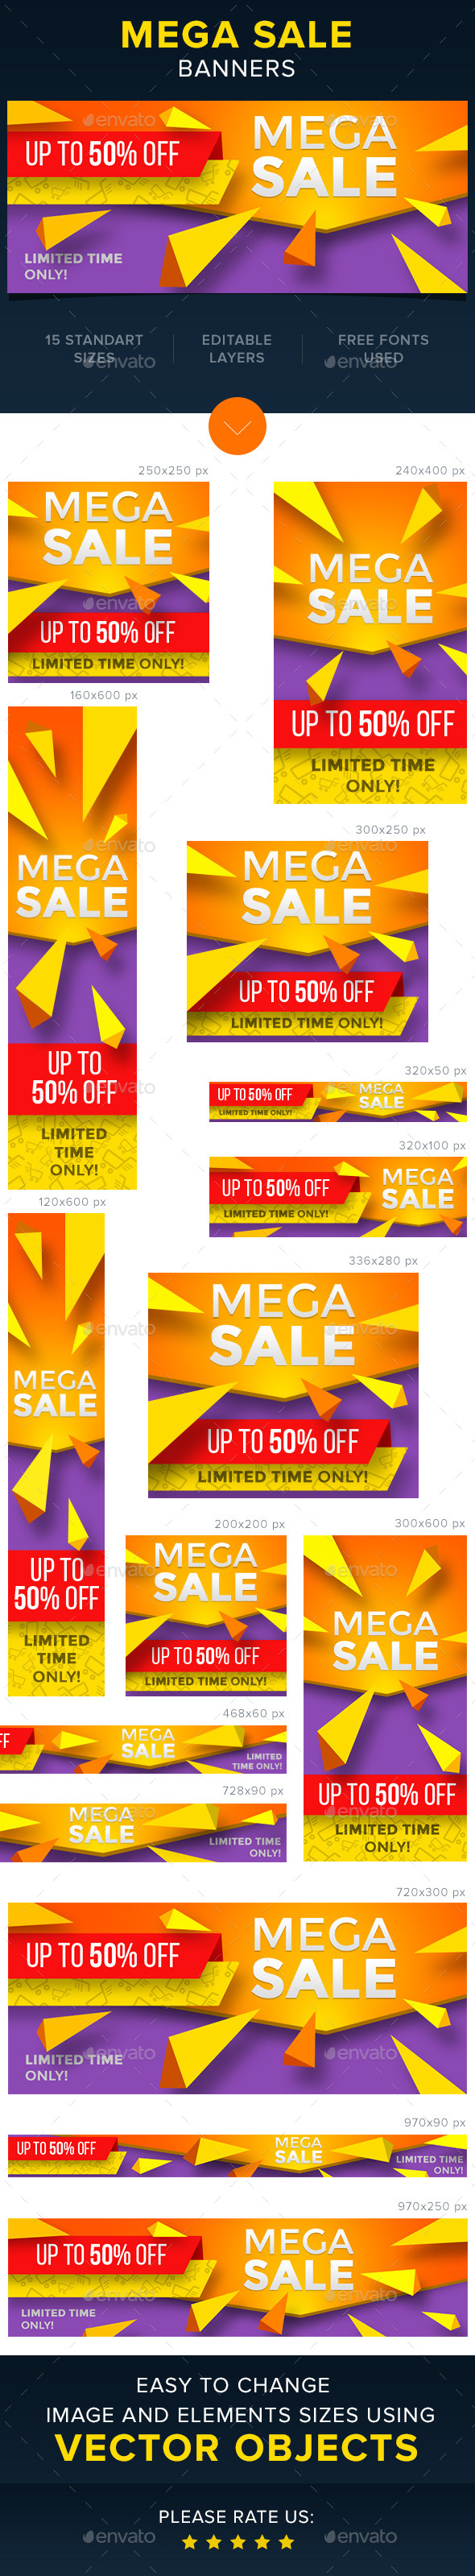 Mega Sale Banners - Banners & Ads Web Elements